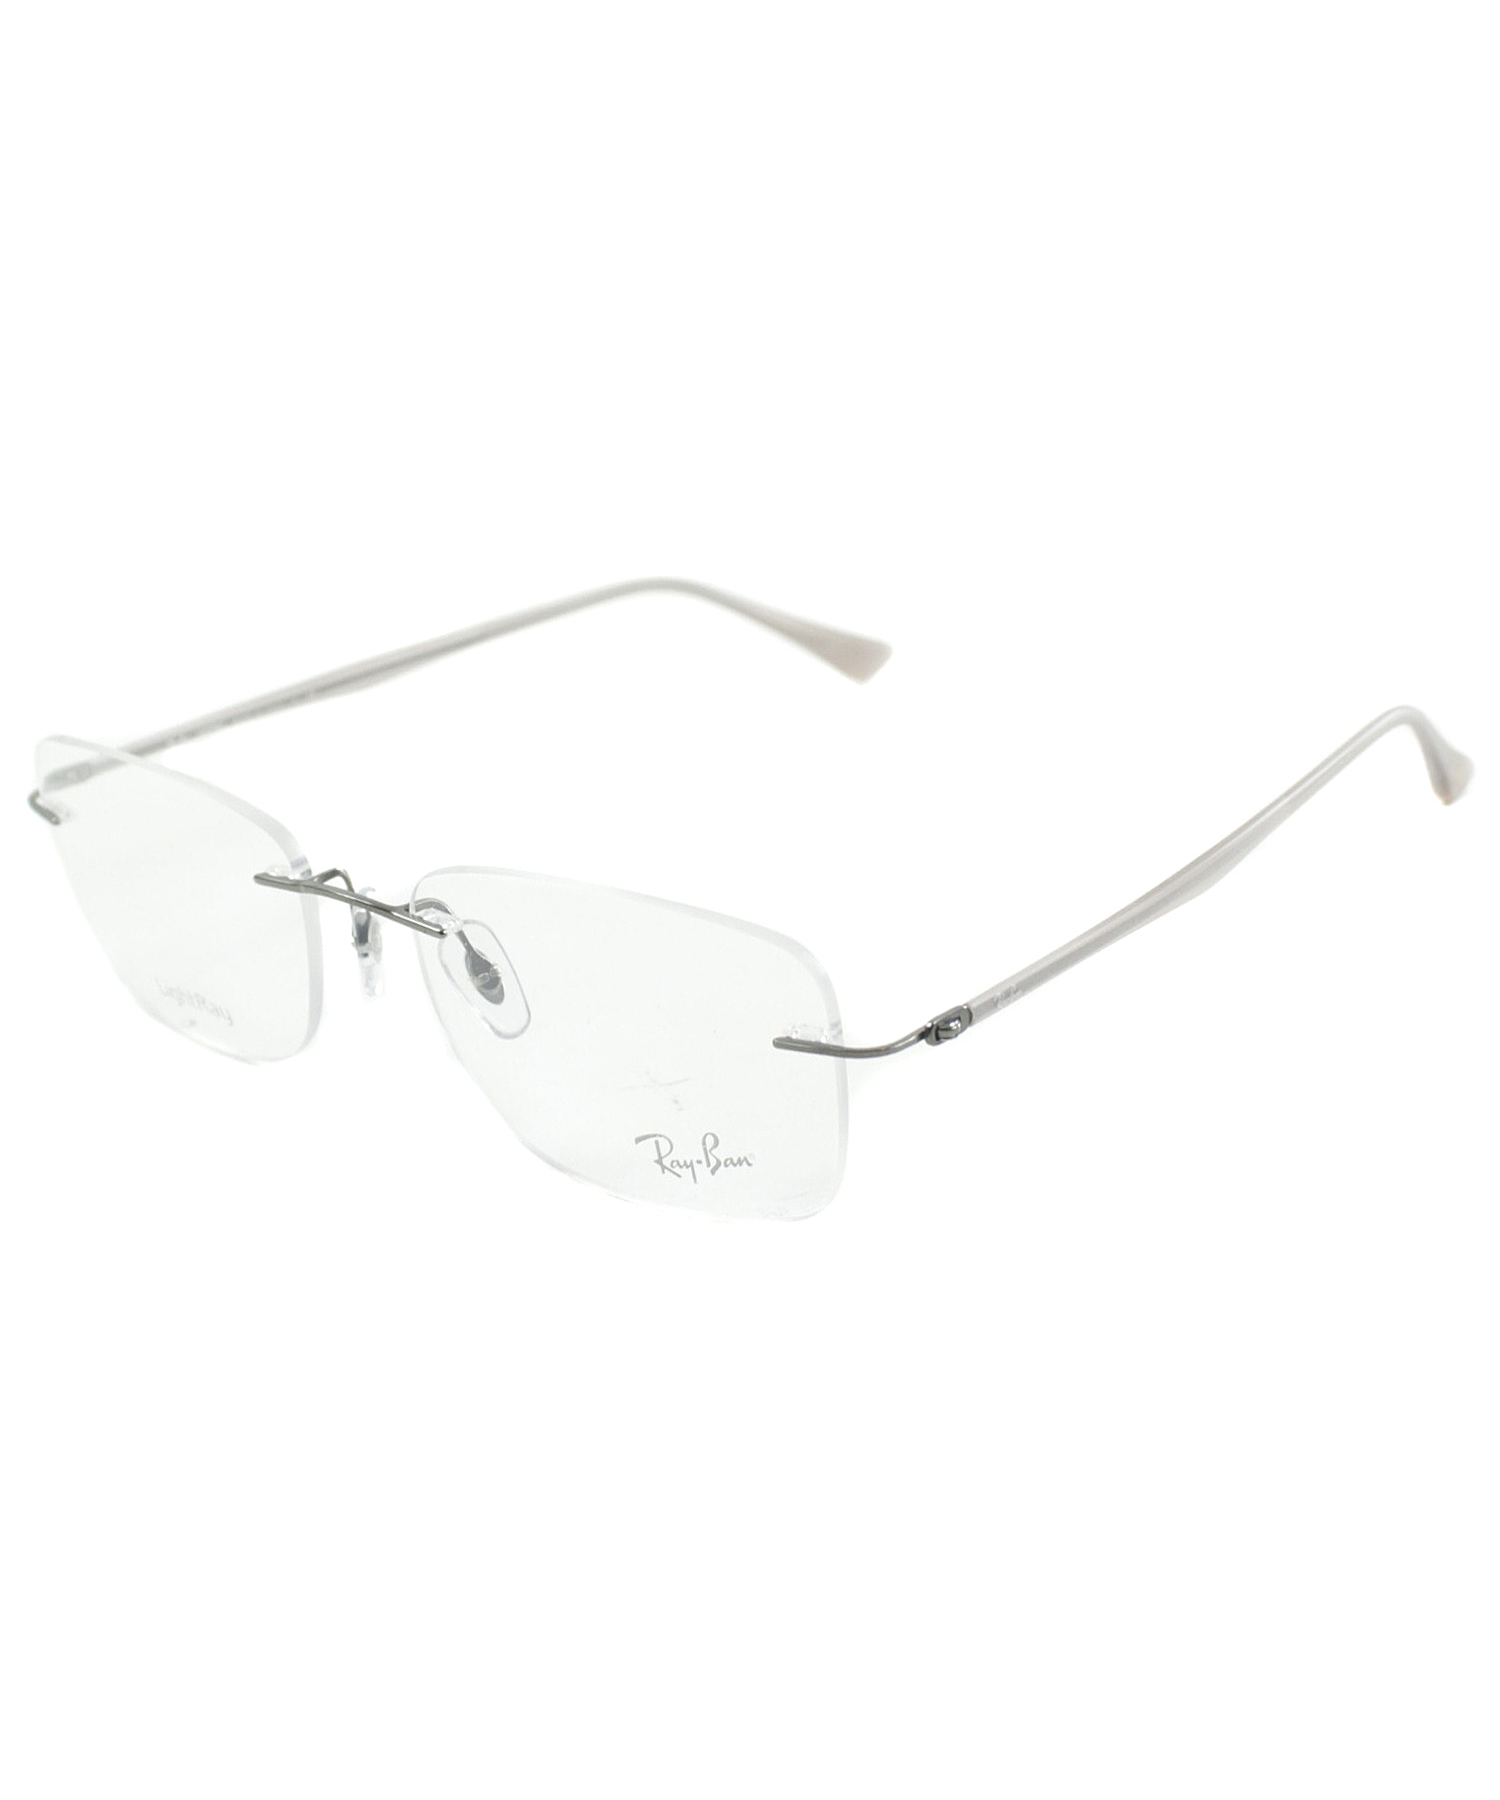 071569572f8 Lyst - Ray-Ban Rimless Metal Eyeglasses in White